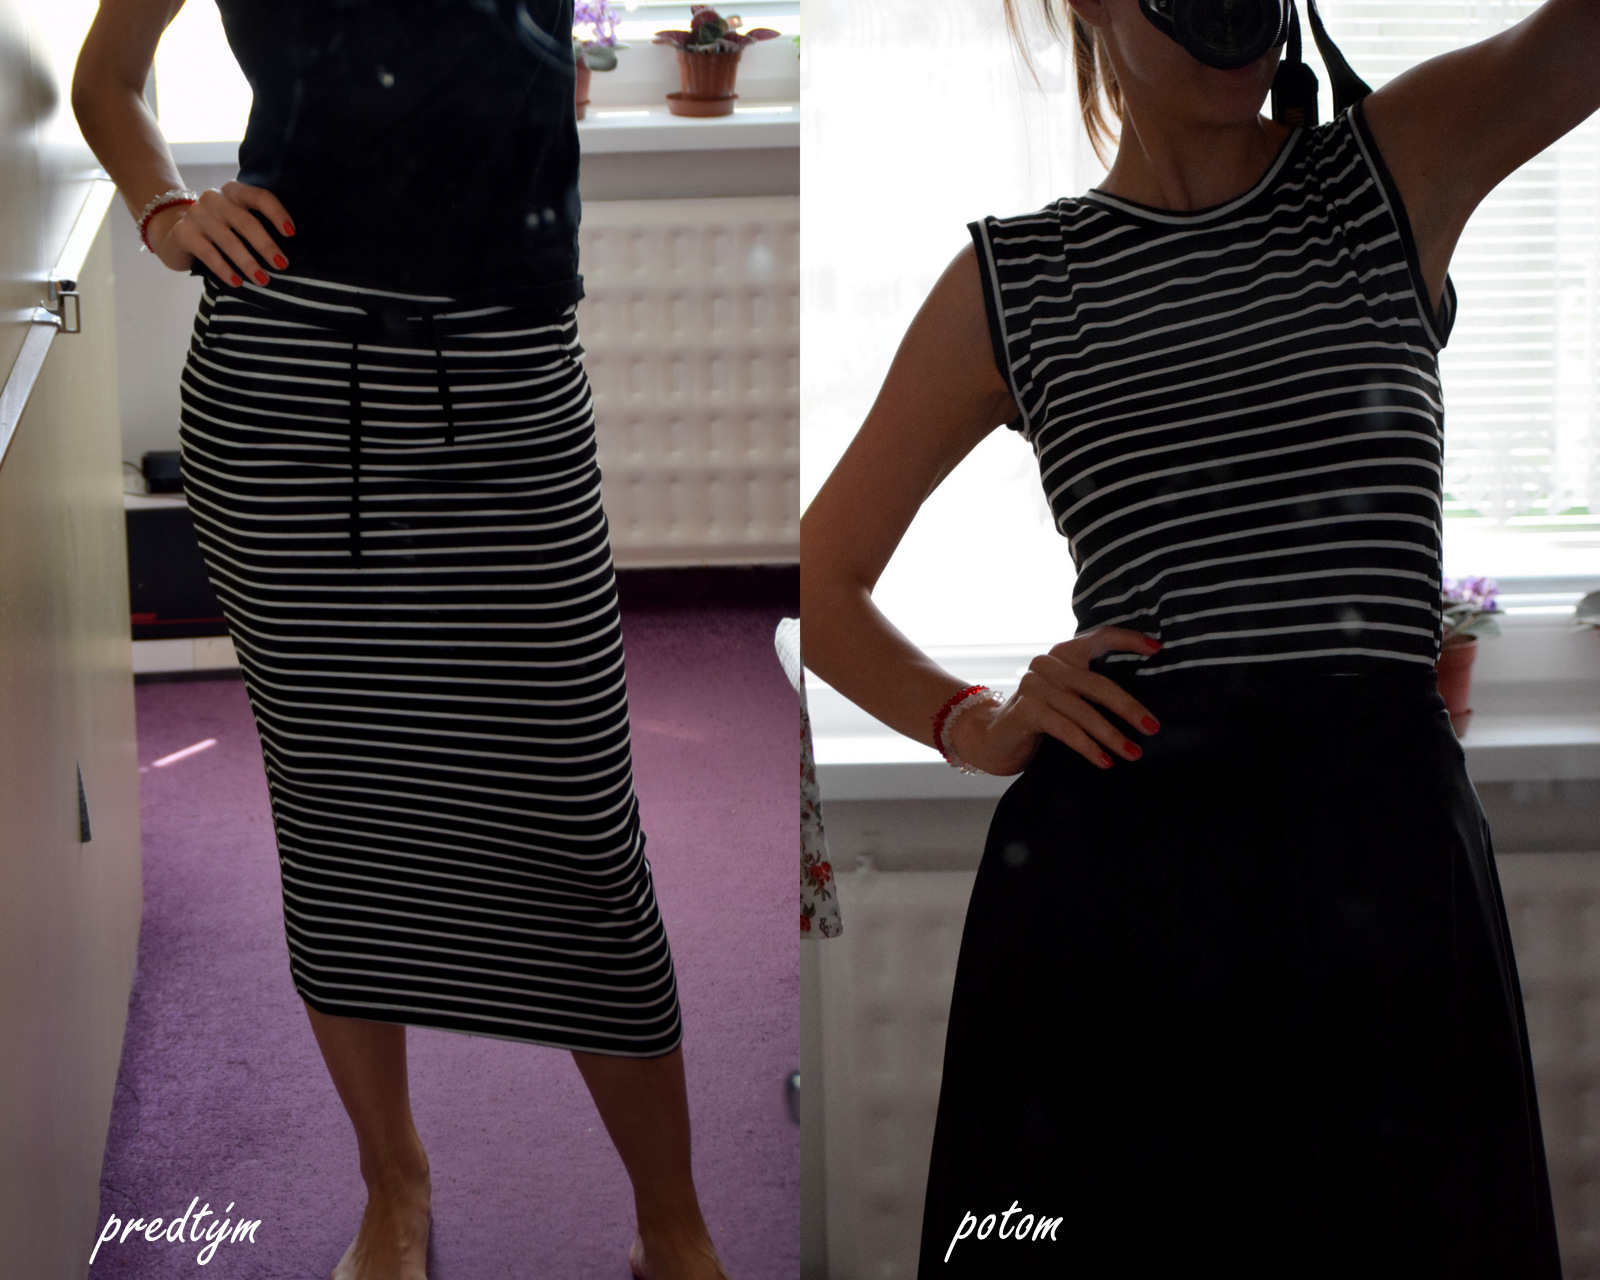 refashion / recycling: striped t-shirt from jersey midi skirt